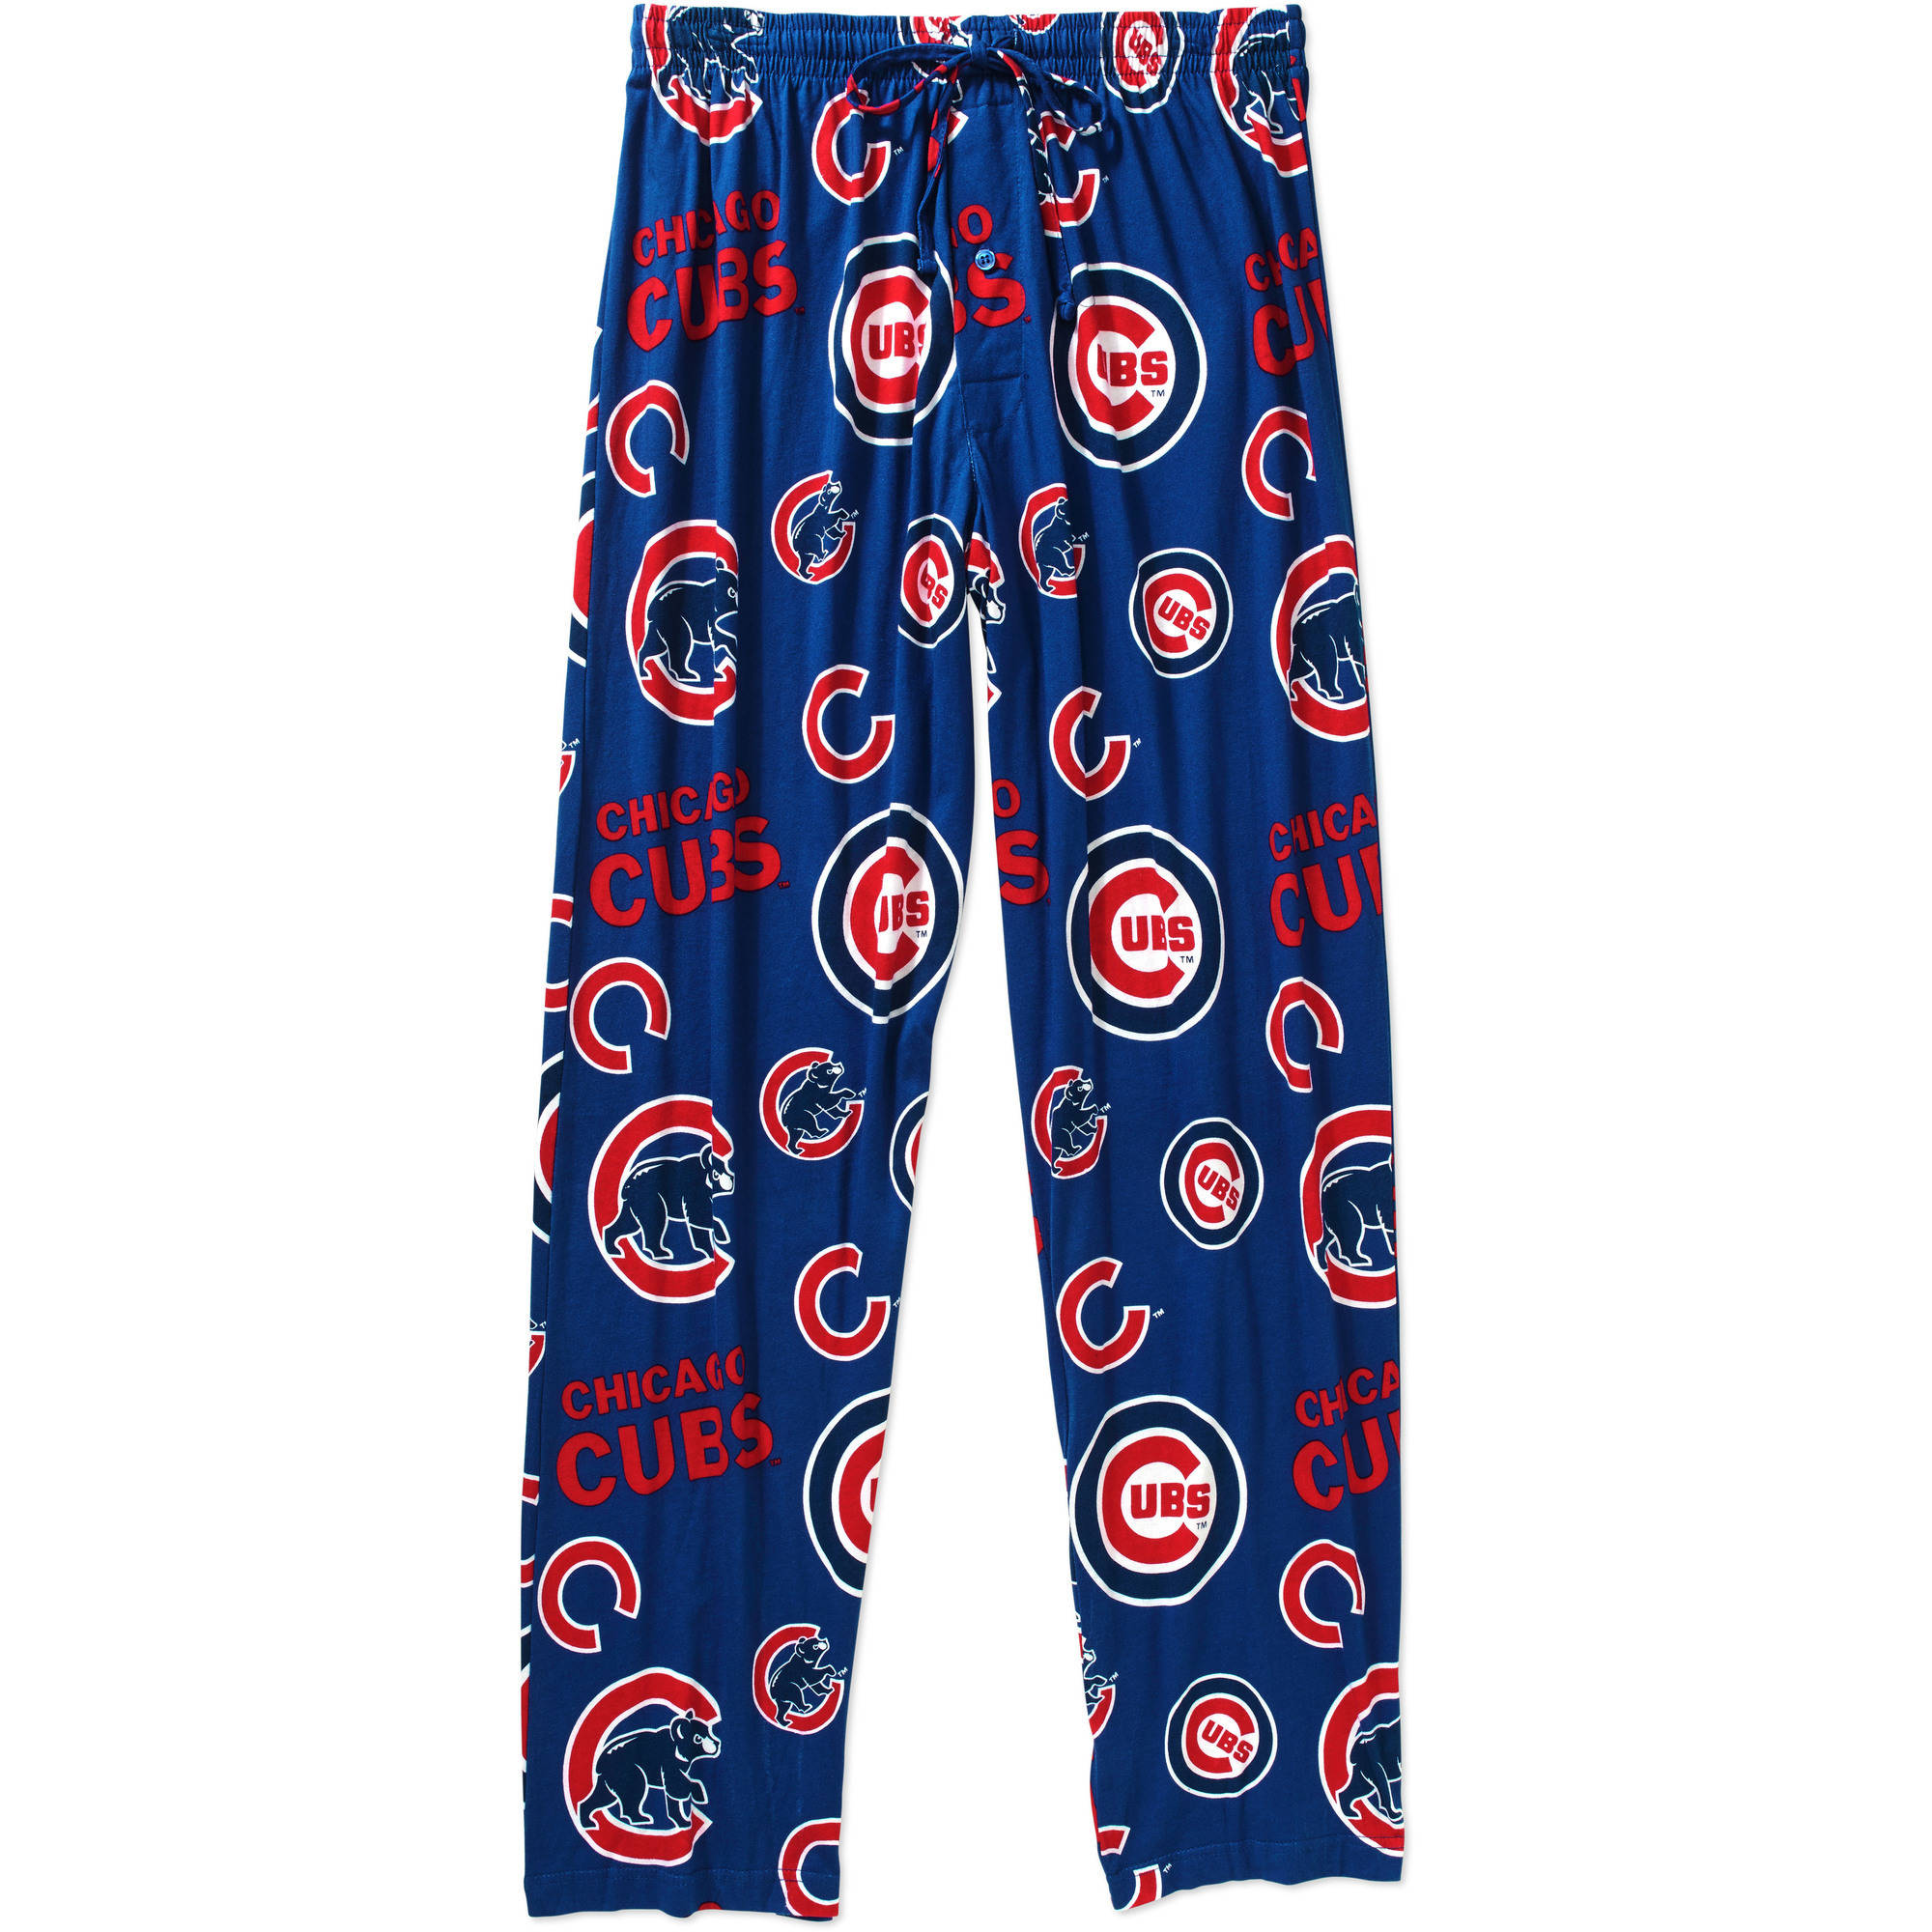 MLB Men's Chicago Cubs Knit Sleep Pants